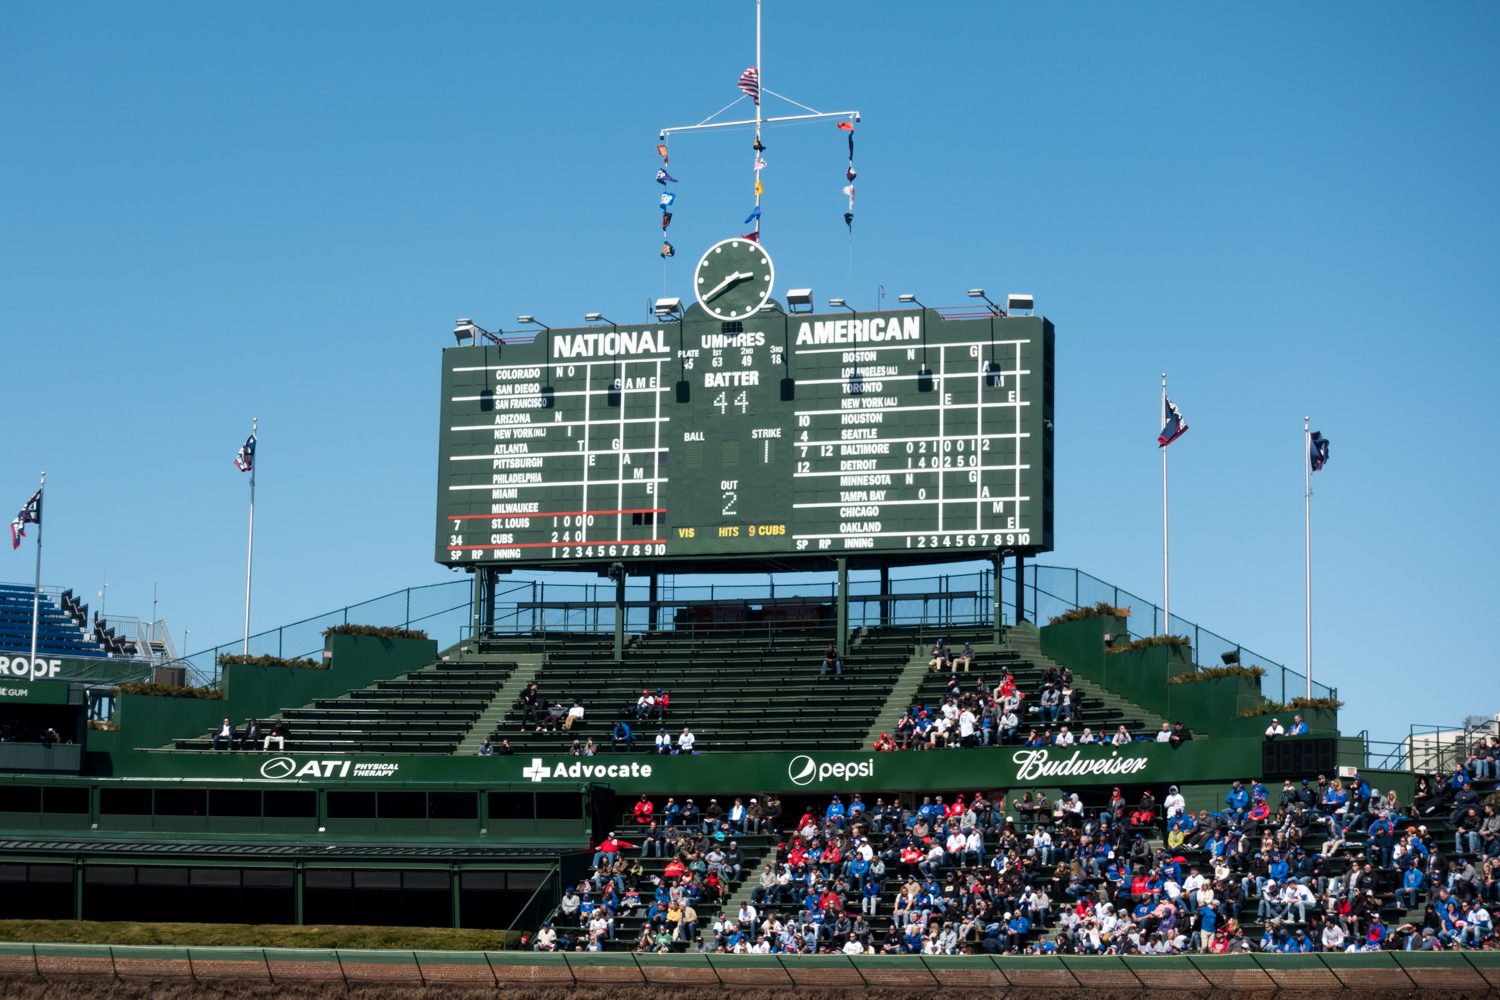 Travel Guide to Wrigleyville in Chicago: Tips for seeing the Cubs play at Wrigley Field. #Chicago #Cubs #baseball #sports #travel #summer #midwest #travel #getaway #Illinois #trip #guide #planning